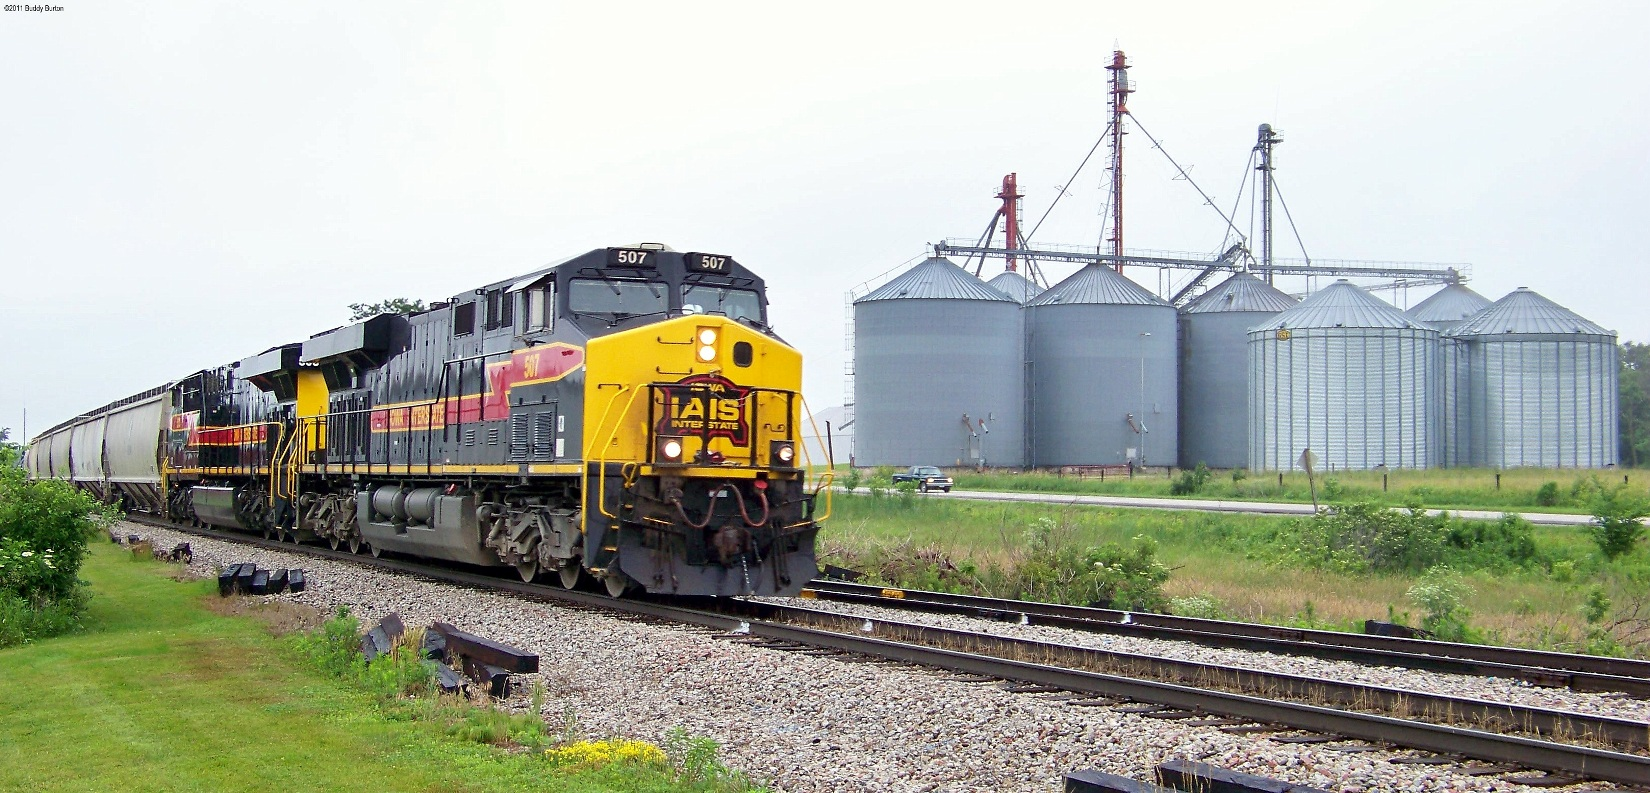 CRIC22 passing by the feed mill at Homestead. 6/22/11